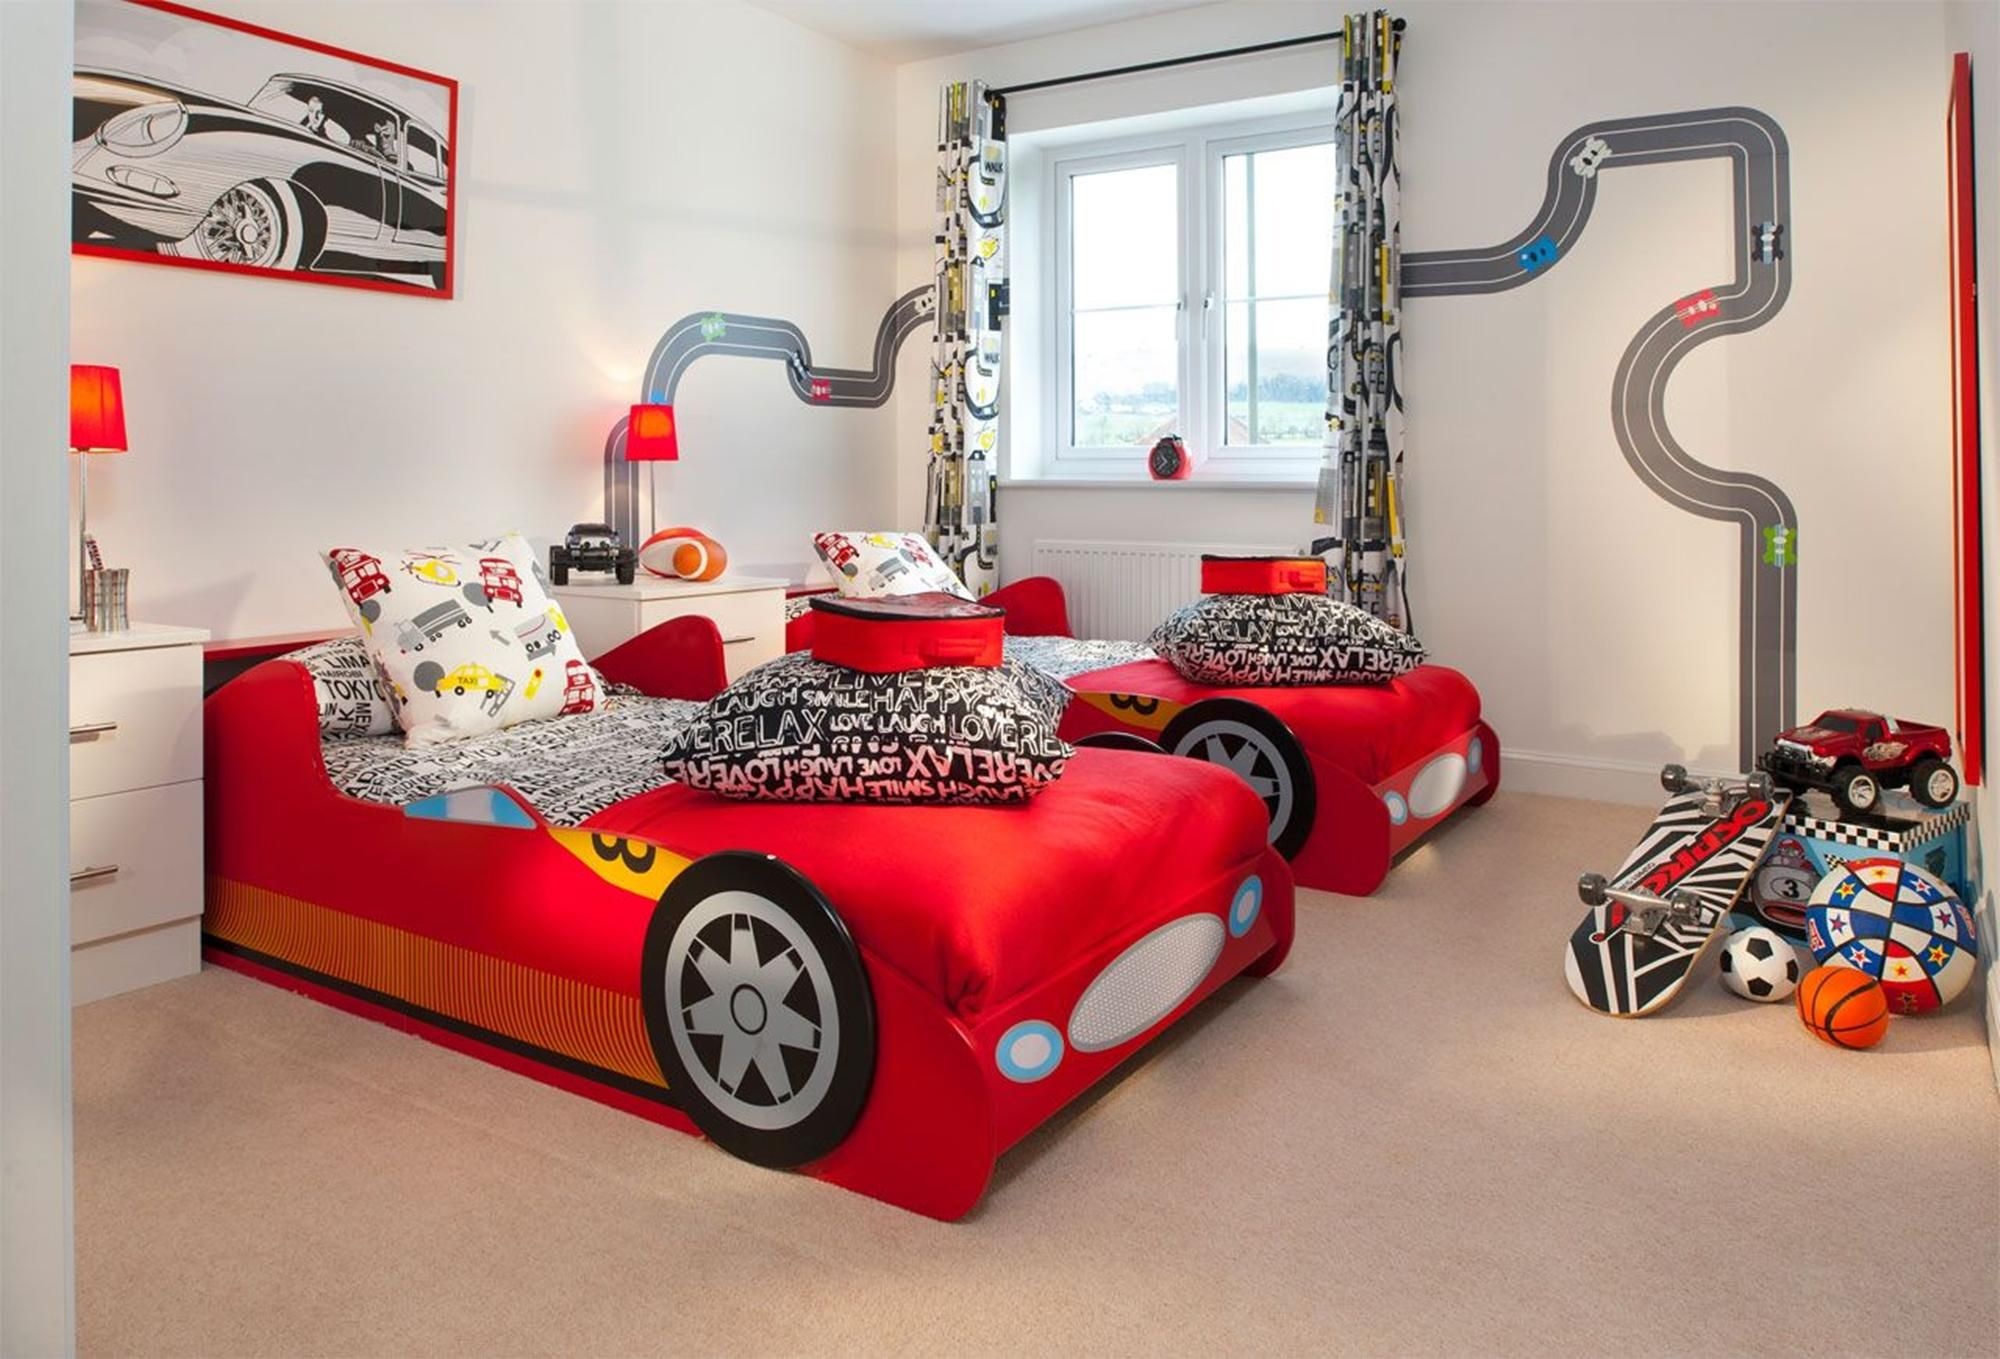 Boys car bedroom ideas - Boys Car Bedroom